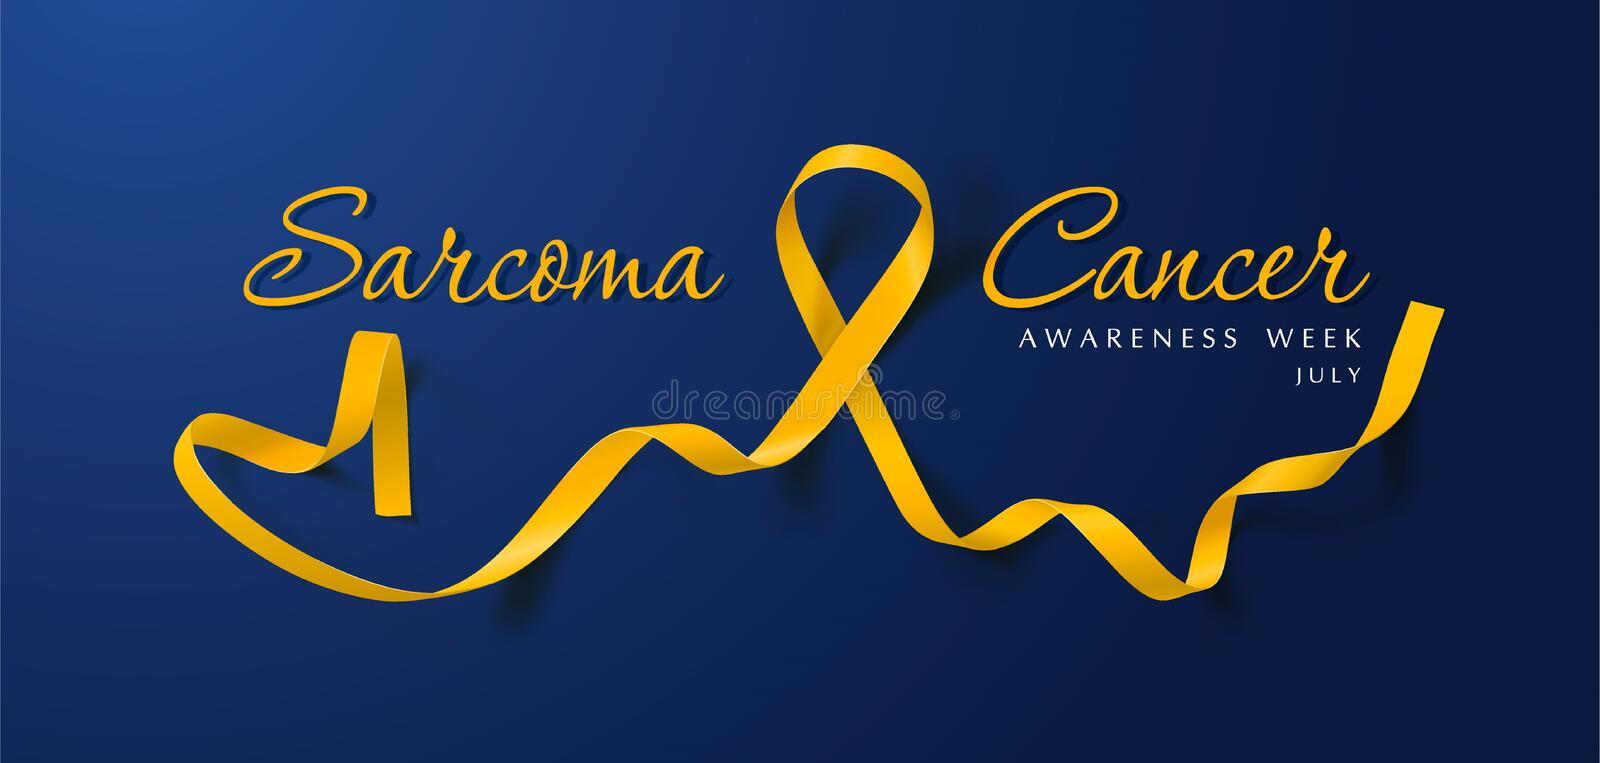 Sarcoma and Bone Cancer Awareness Calligraphy Poster Design. Realistic Yellow Ribbon. July is Cancer Awareness Month. Vector Illustration royalty free illustration